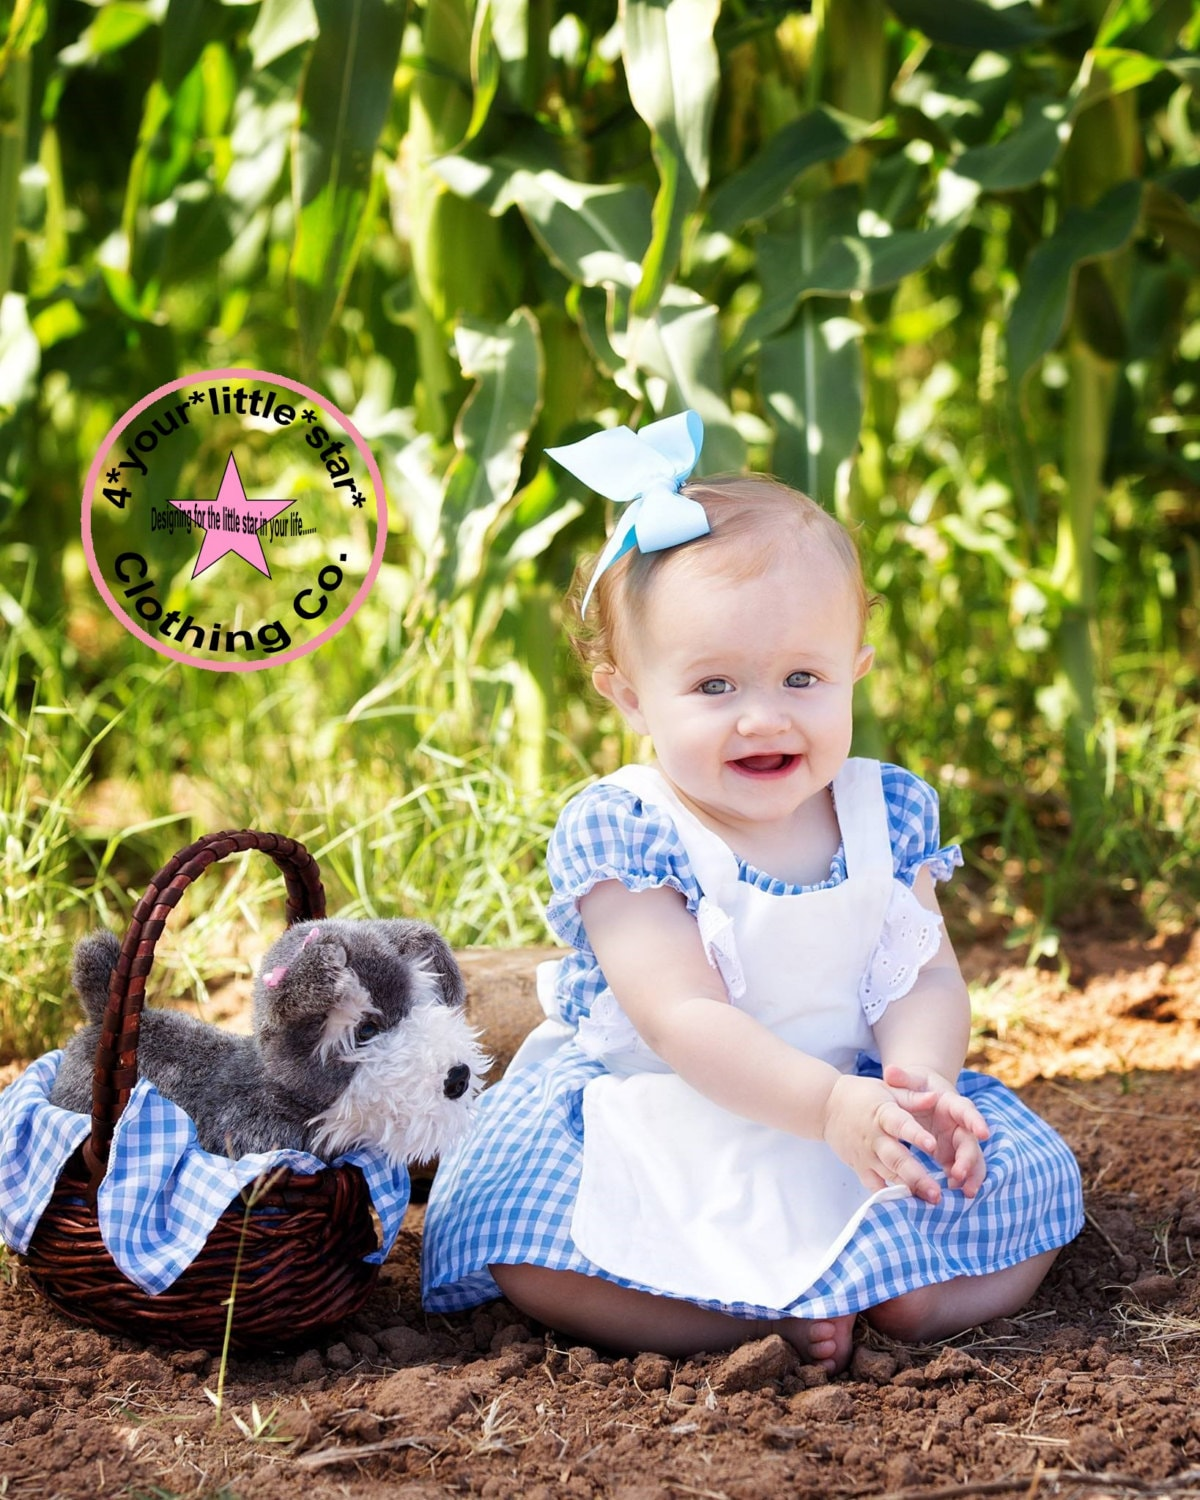 wizard of oz inspired dorothy costume dress for babies includes apron sizes 0 3 mos to 2t halloween sc 1 st 4yourlittlestar